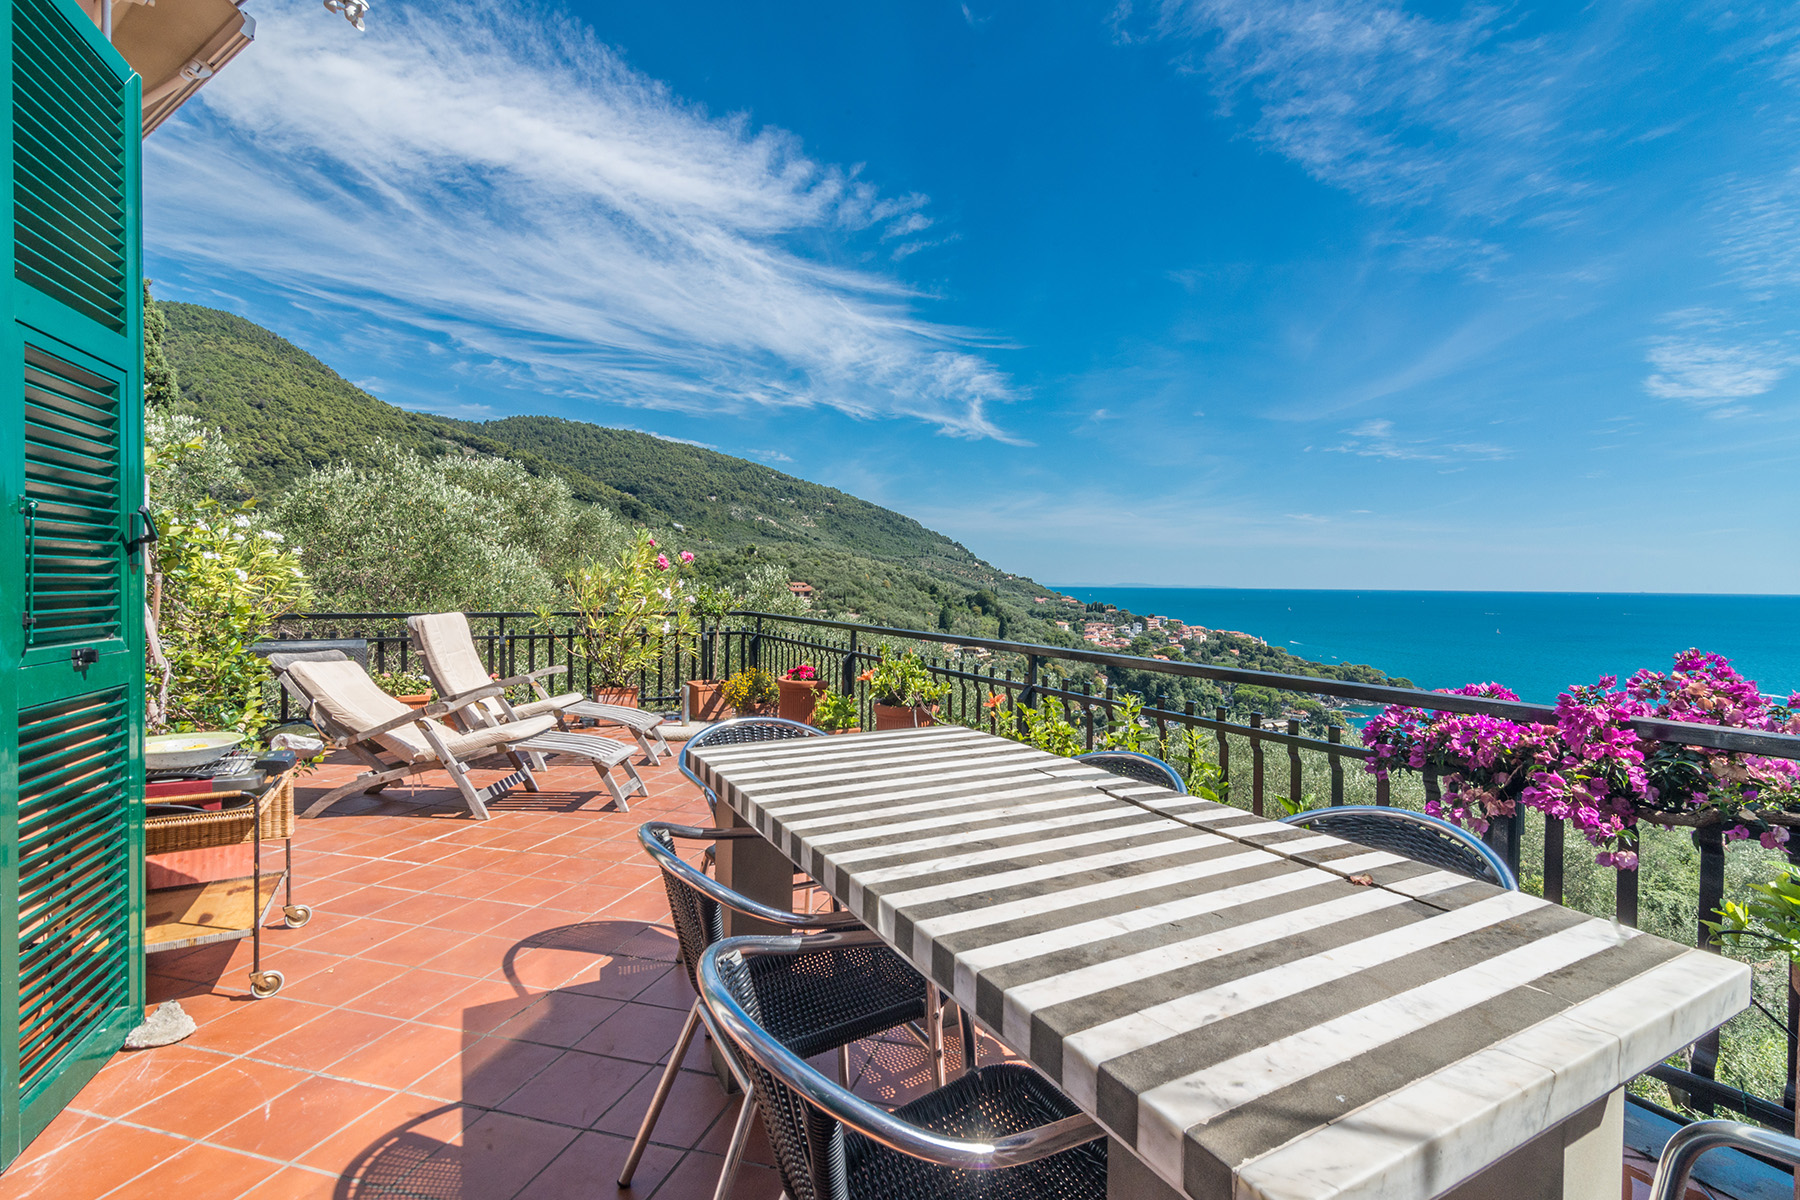 Additional photo for property listing at Exclusive penthouse with breath-taking view Località Fiascherino Fiascherino, La Spezia 19032 Italia